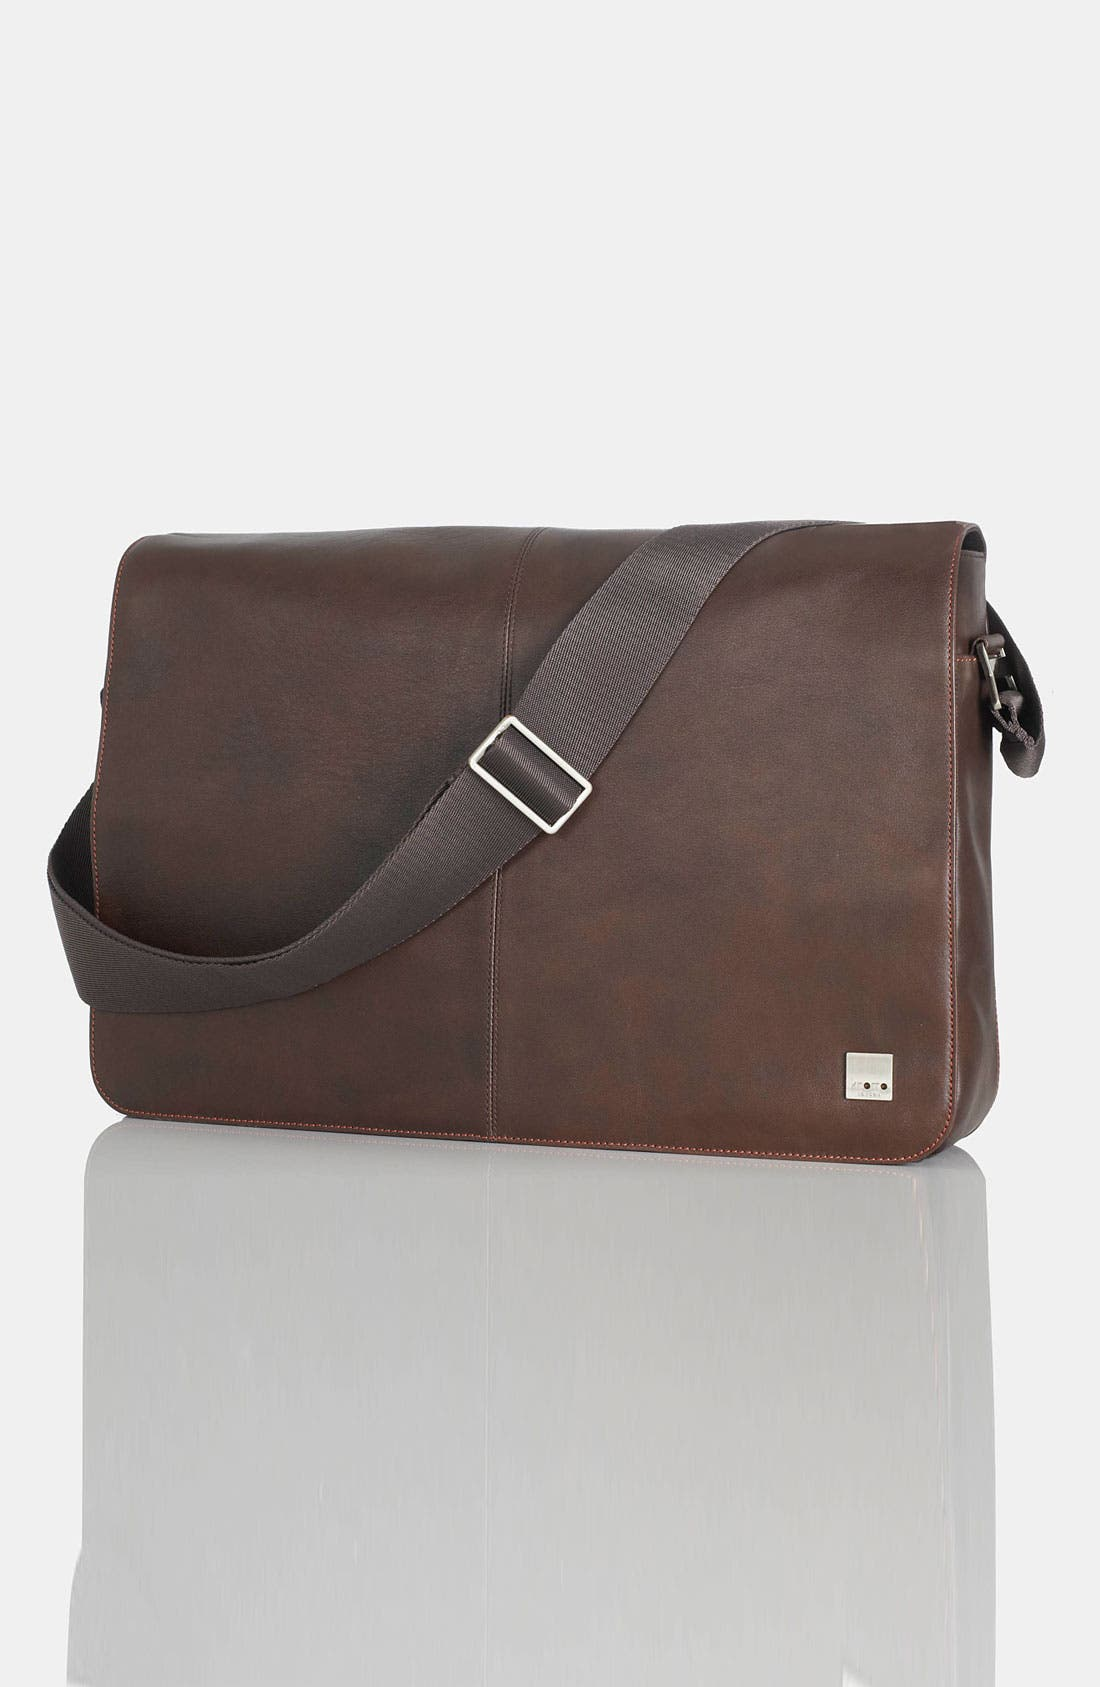 Main Image - KNOMO London 'Bungo' 17 Inch Messenger Bag